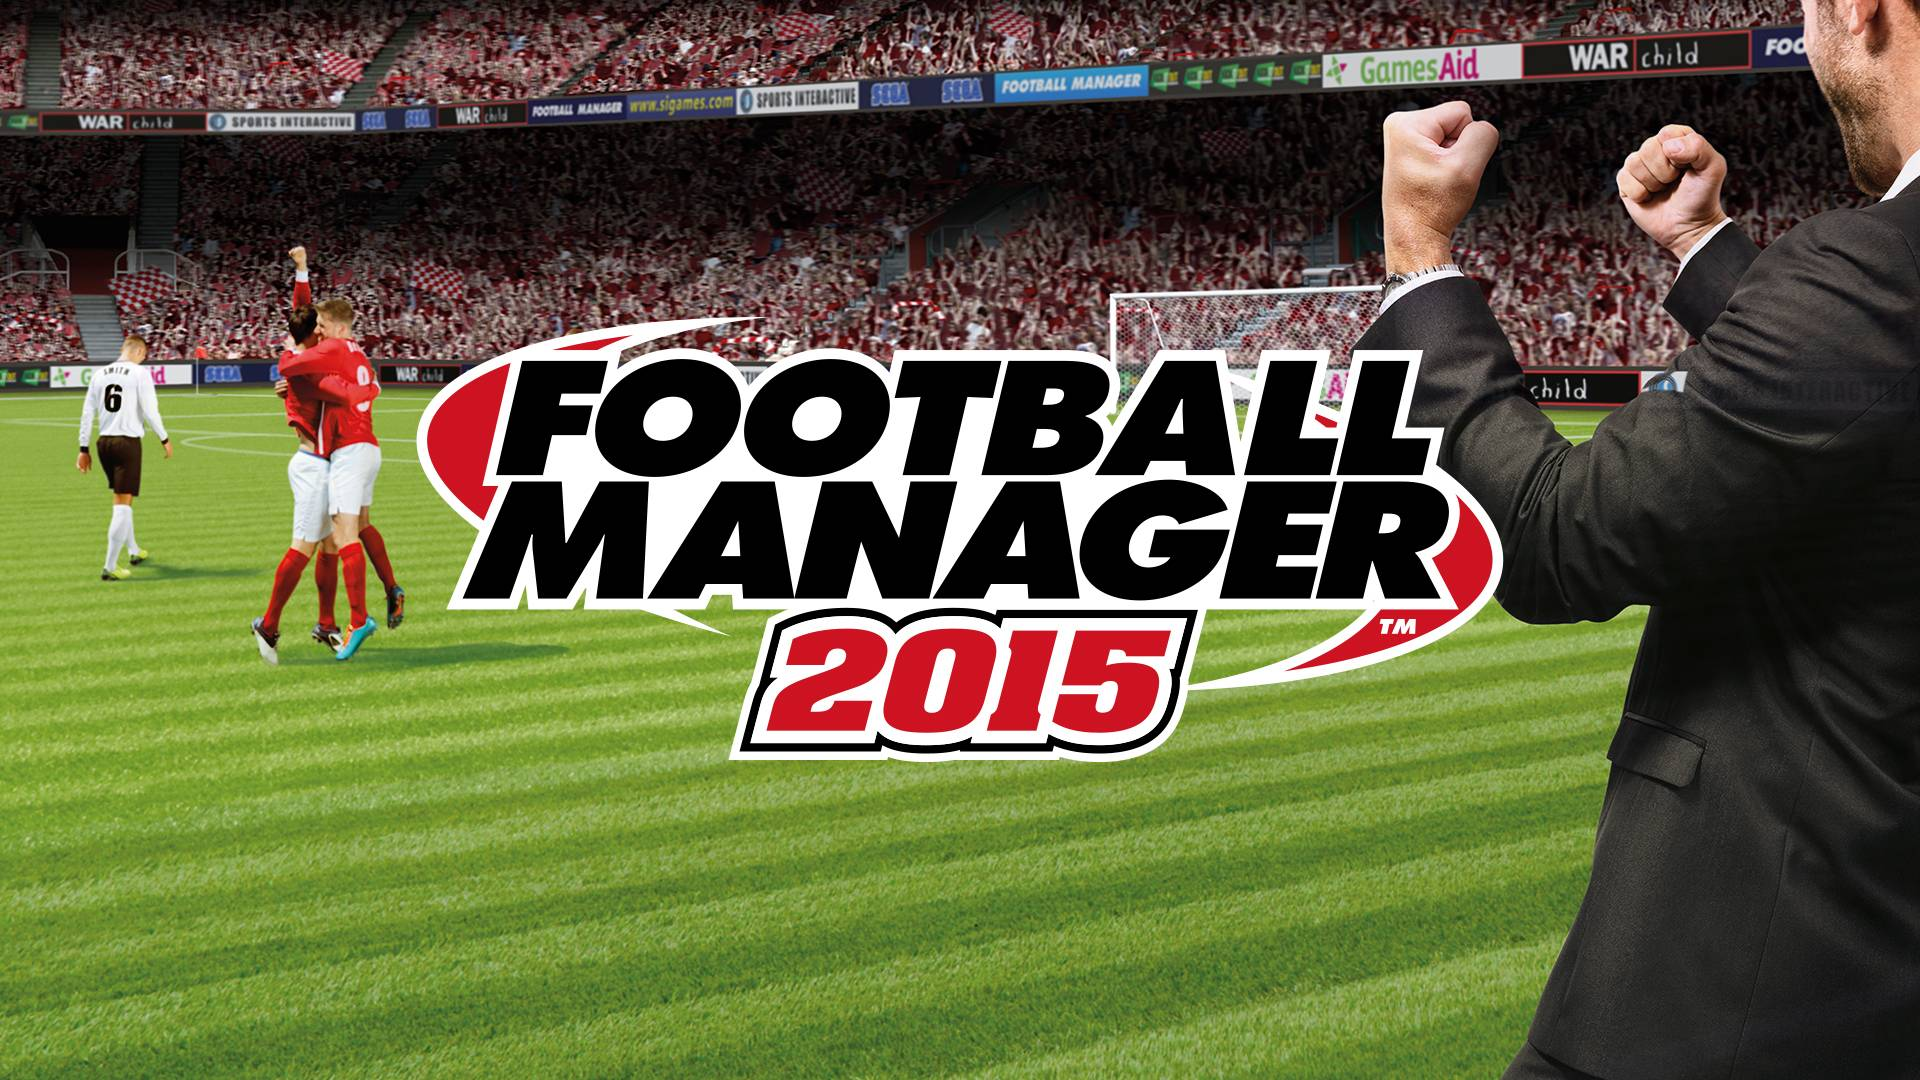 new football manager 2015 features fail to impress